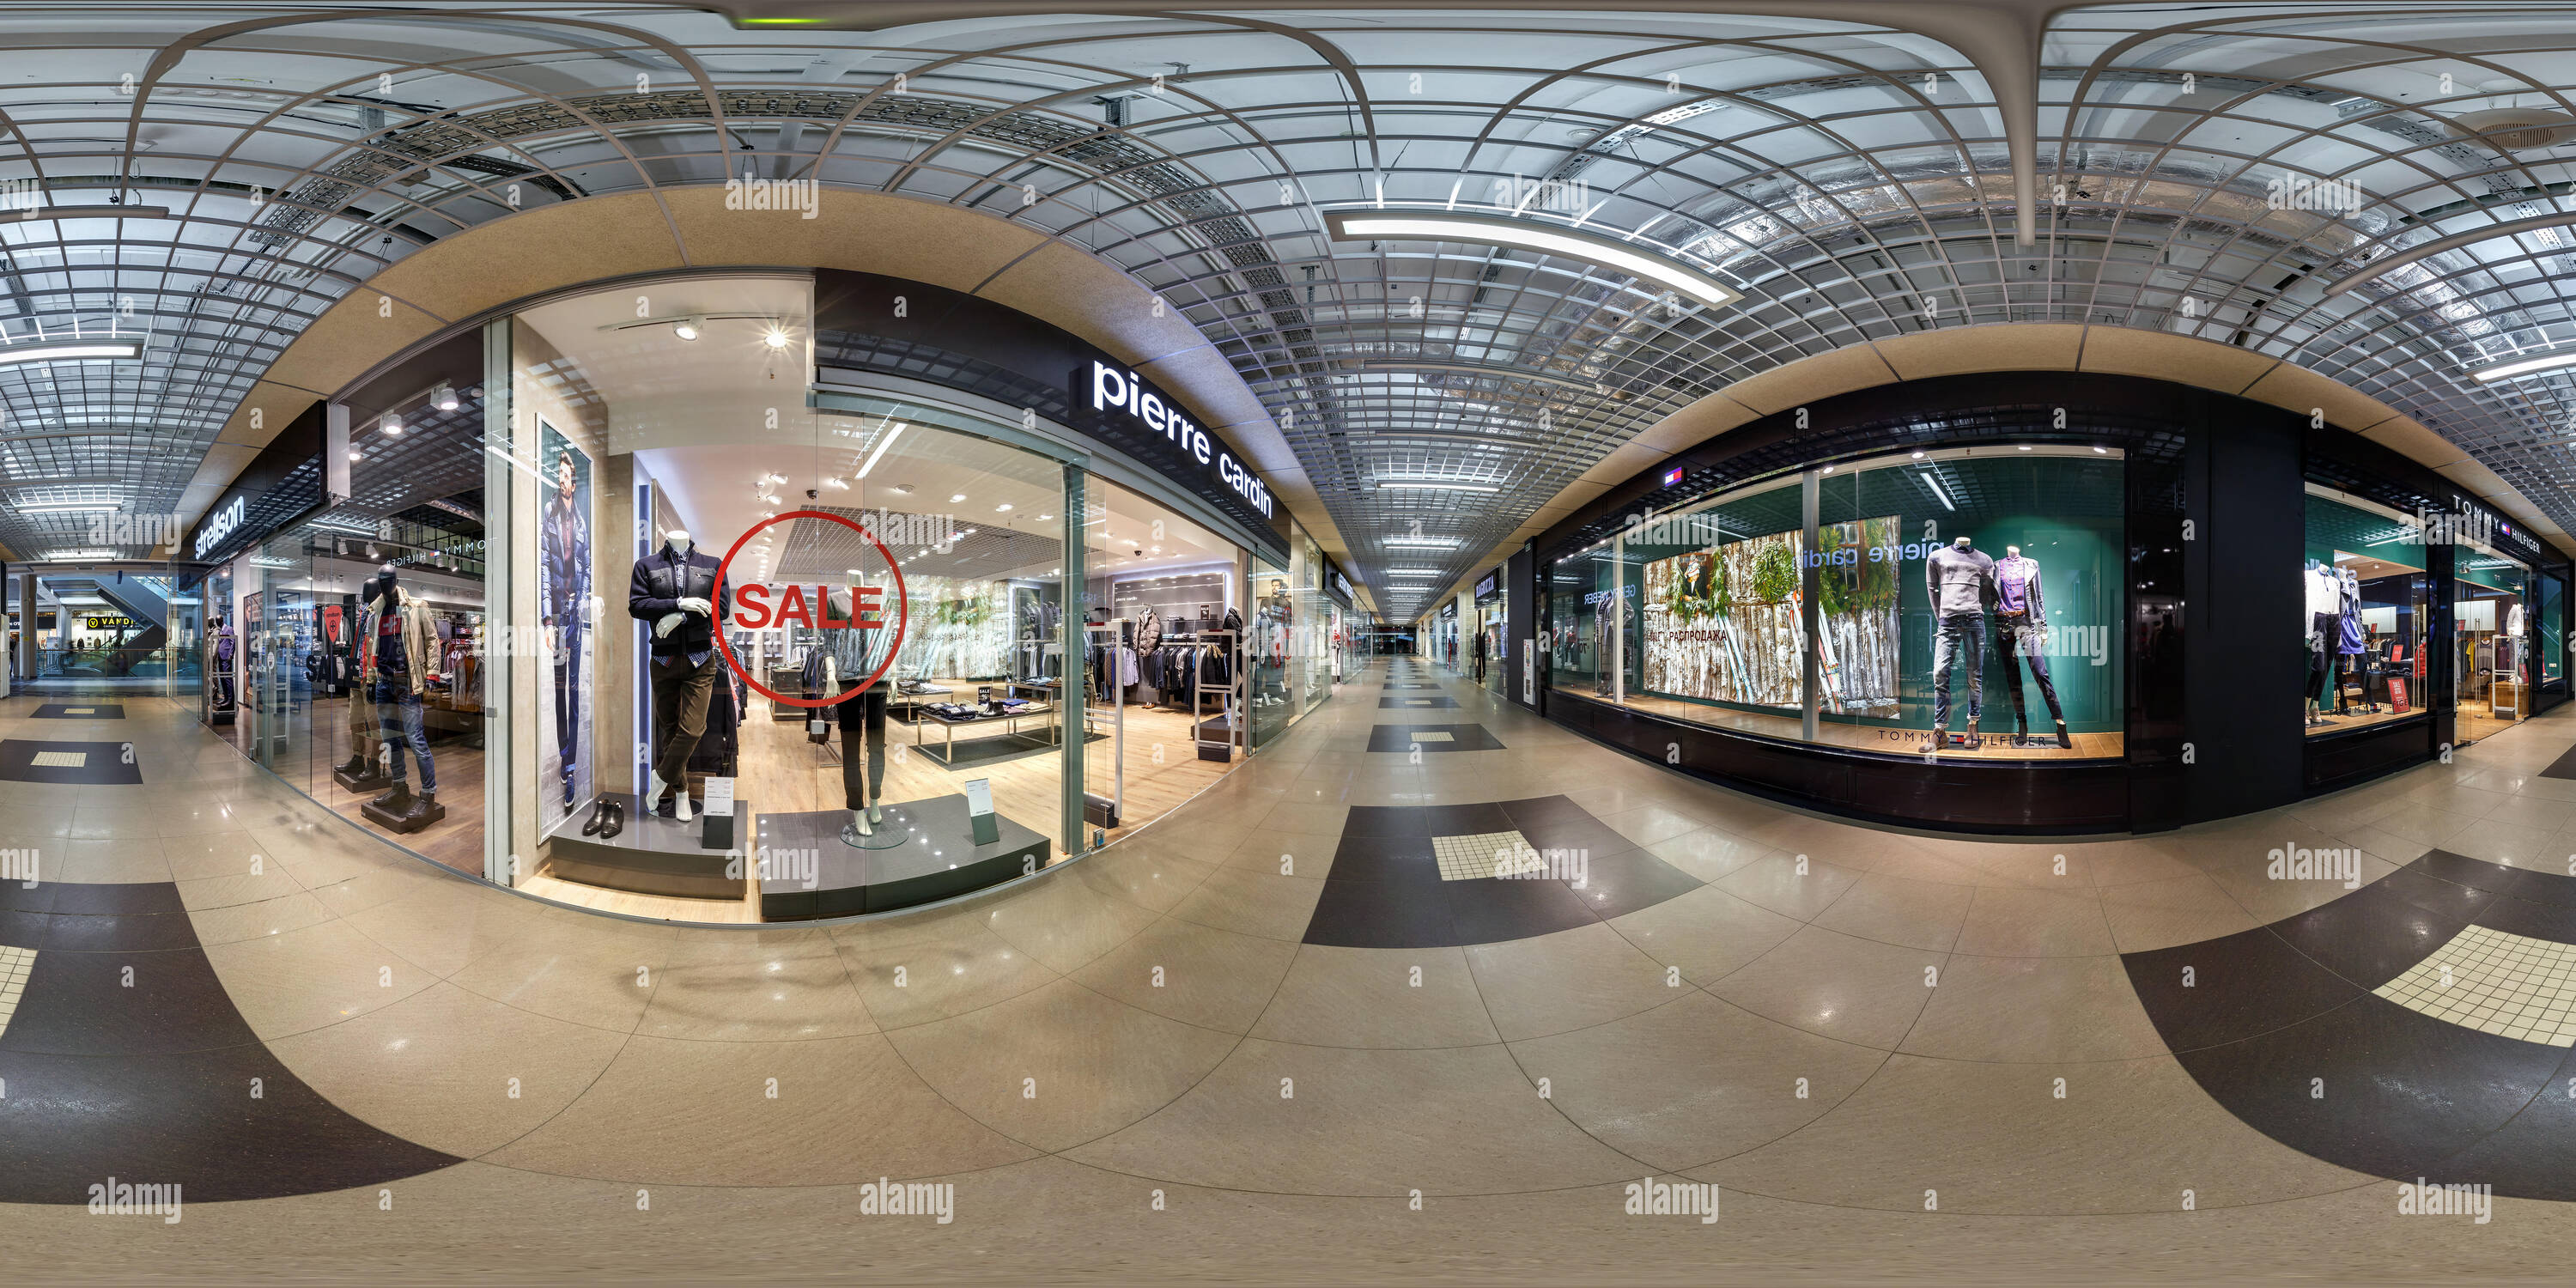 MINSK, BELARUS - MARCH 4, 2015: Panorama in interior modern trade center with different stories and shops.  Full 360 by 180 degree seamless spherical  - Stock Image